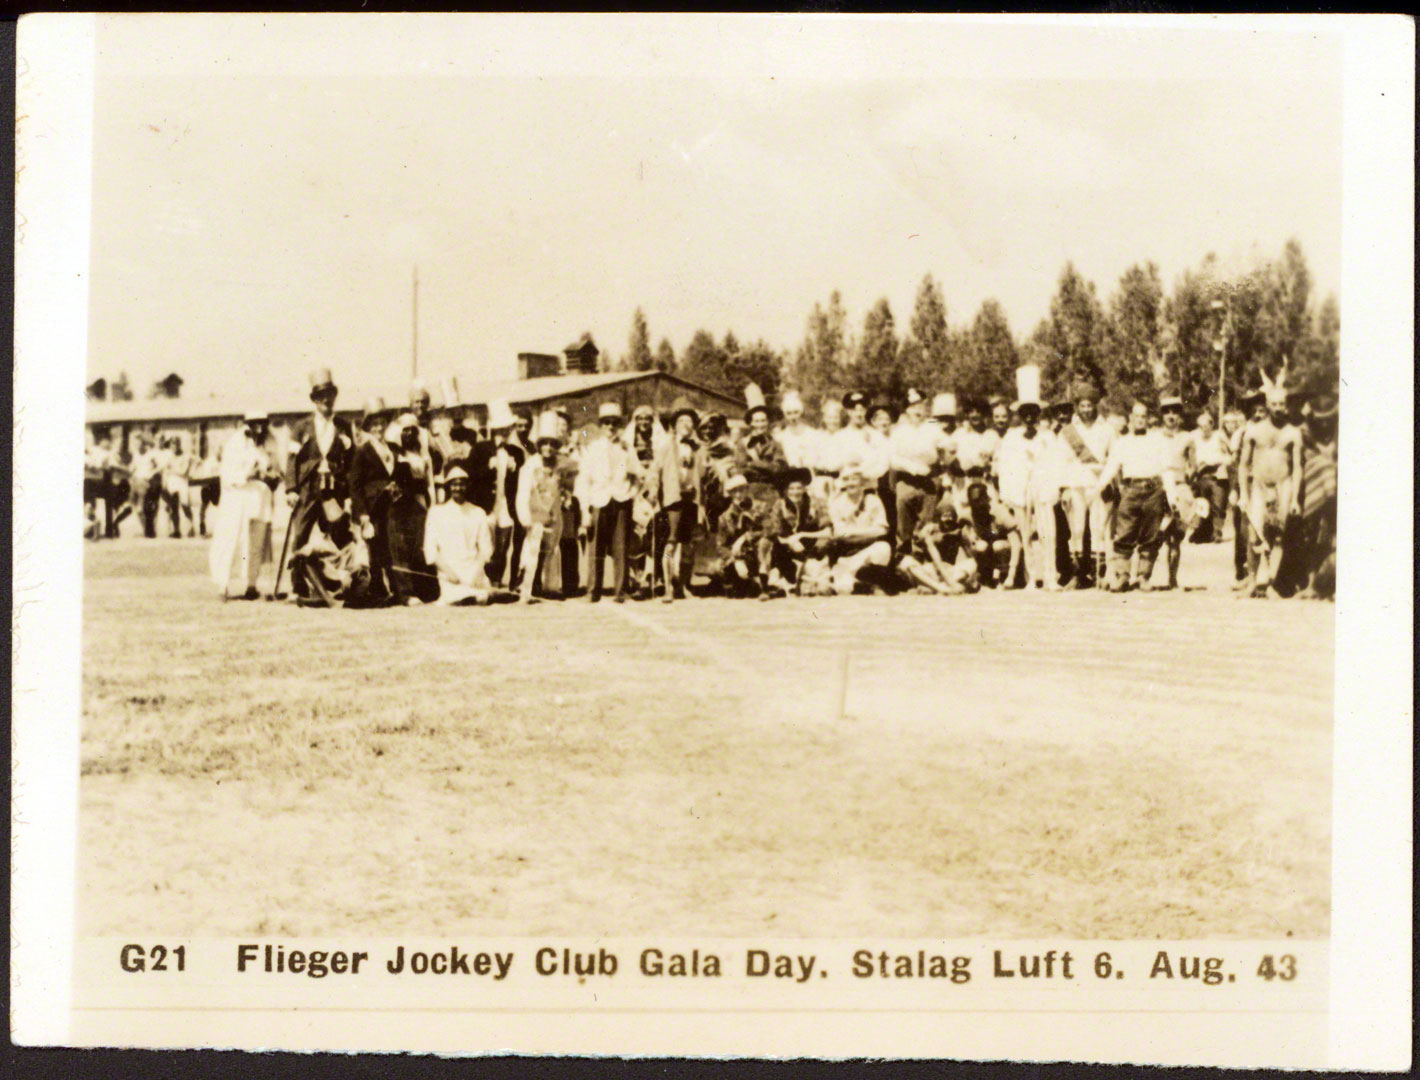 The whole cast and crew from the Flieger Jockey Vlub Day